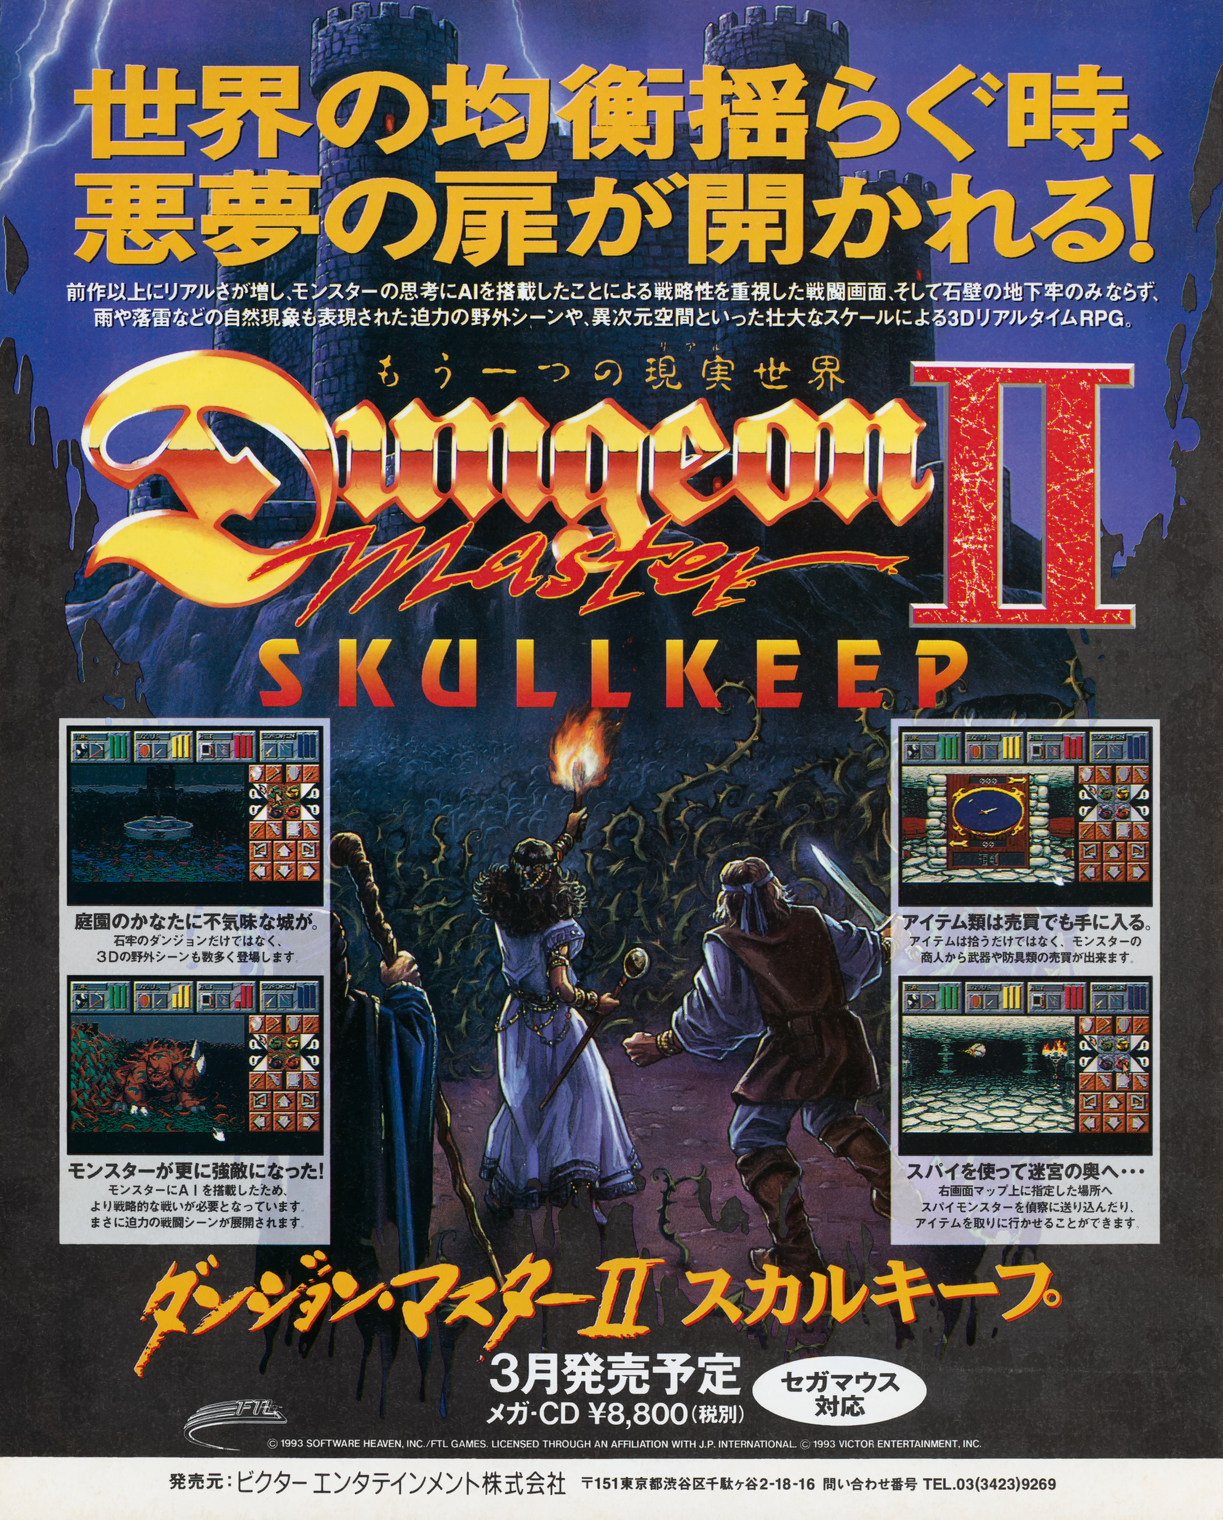 Dungeon Master II for Mega CD Advertisement published in Japanese magazine 'Beep! MegaDrive', February 1994, Page 8